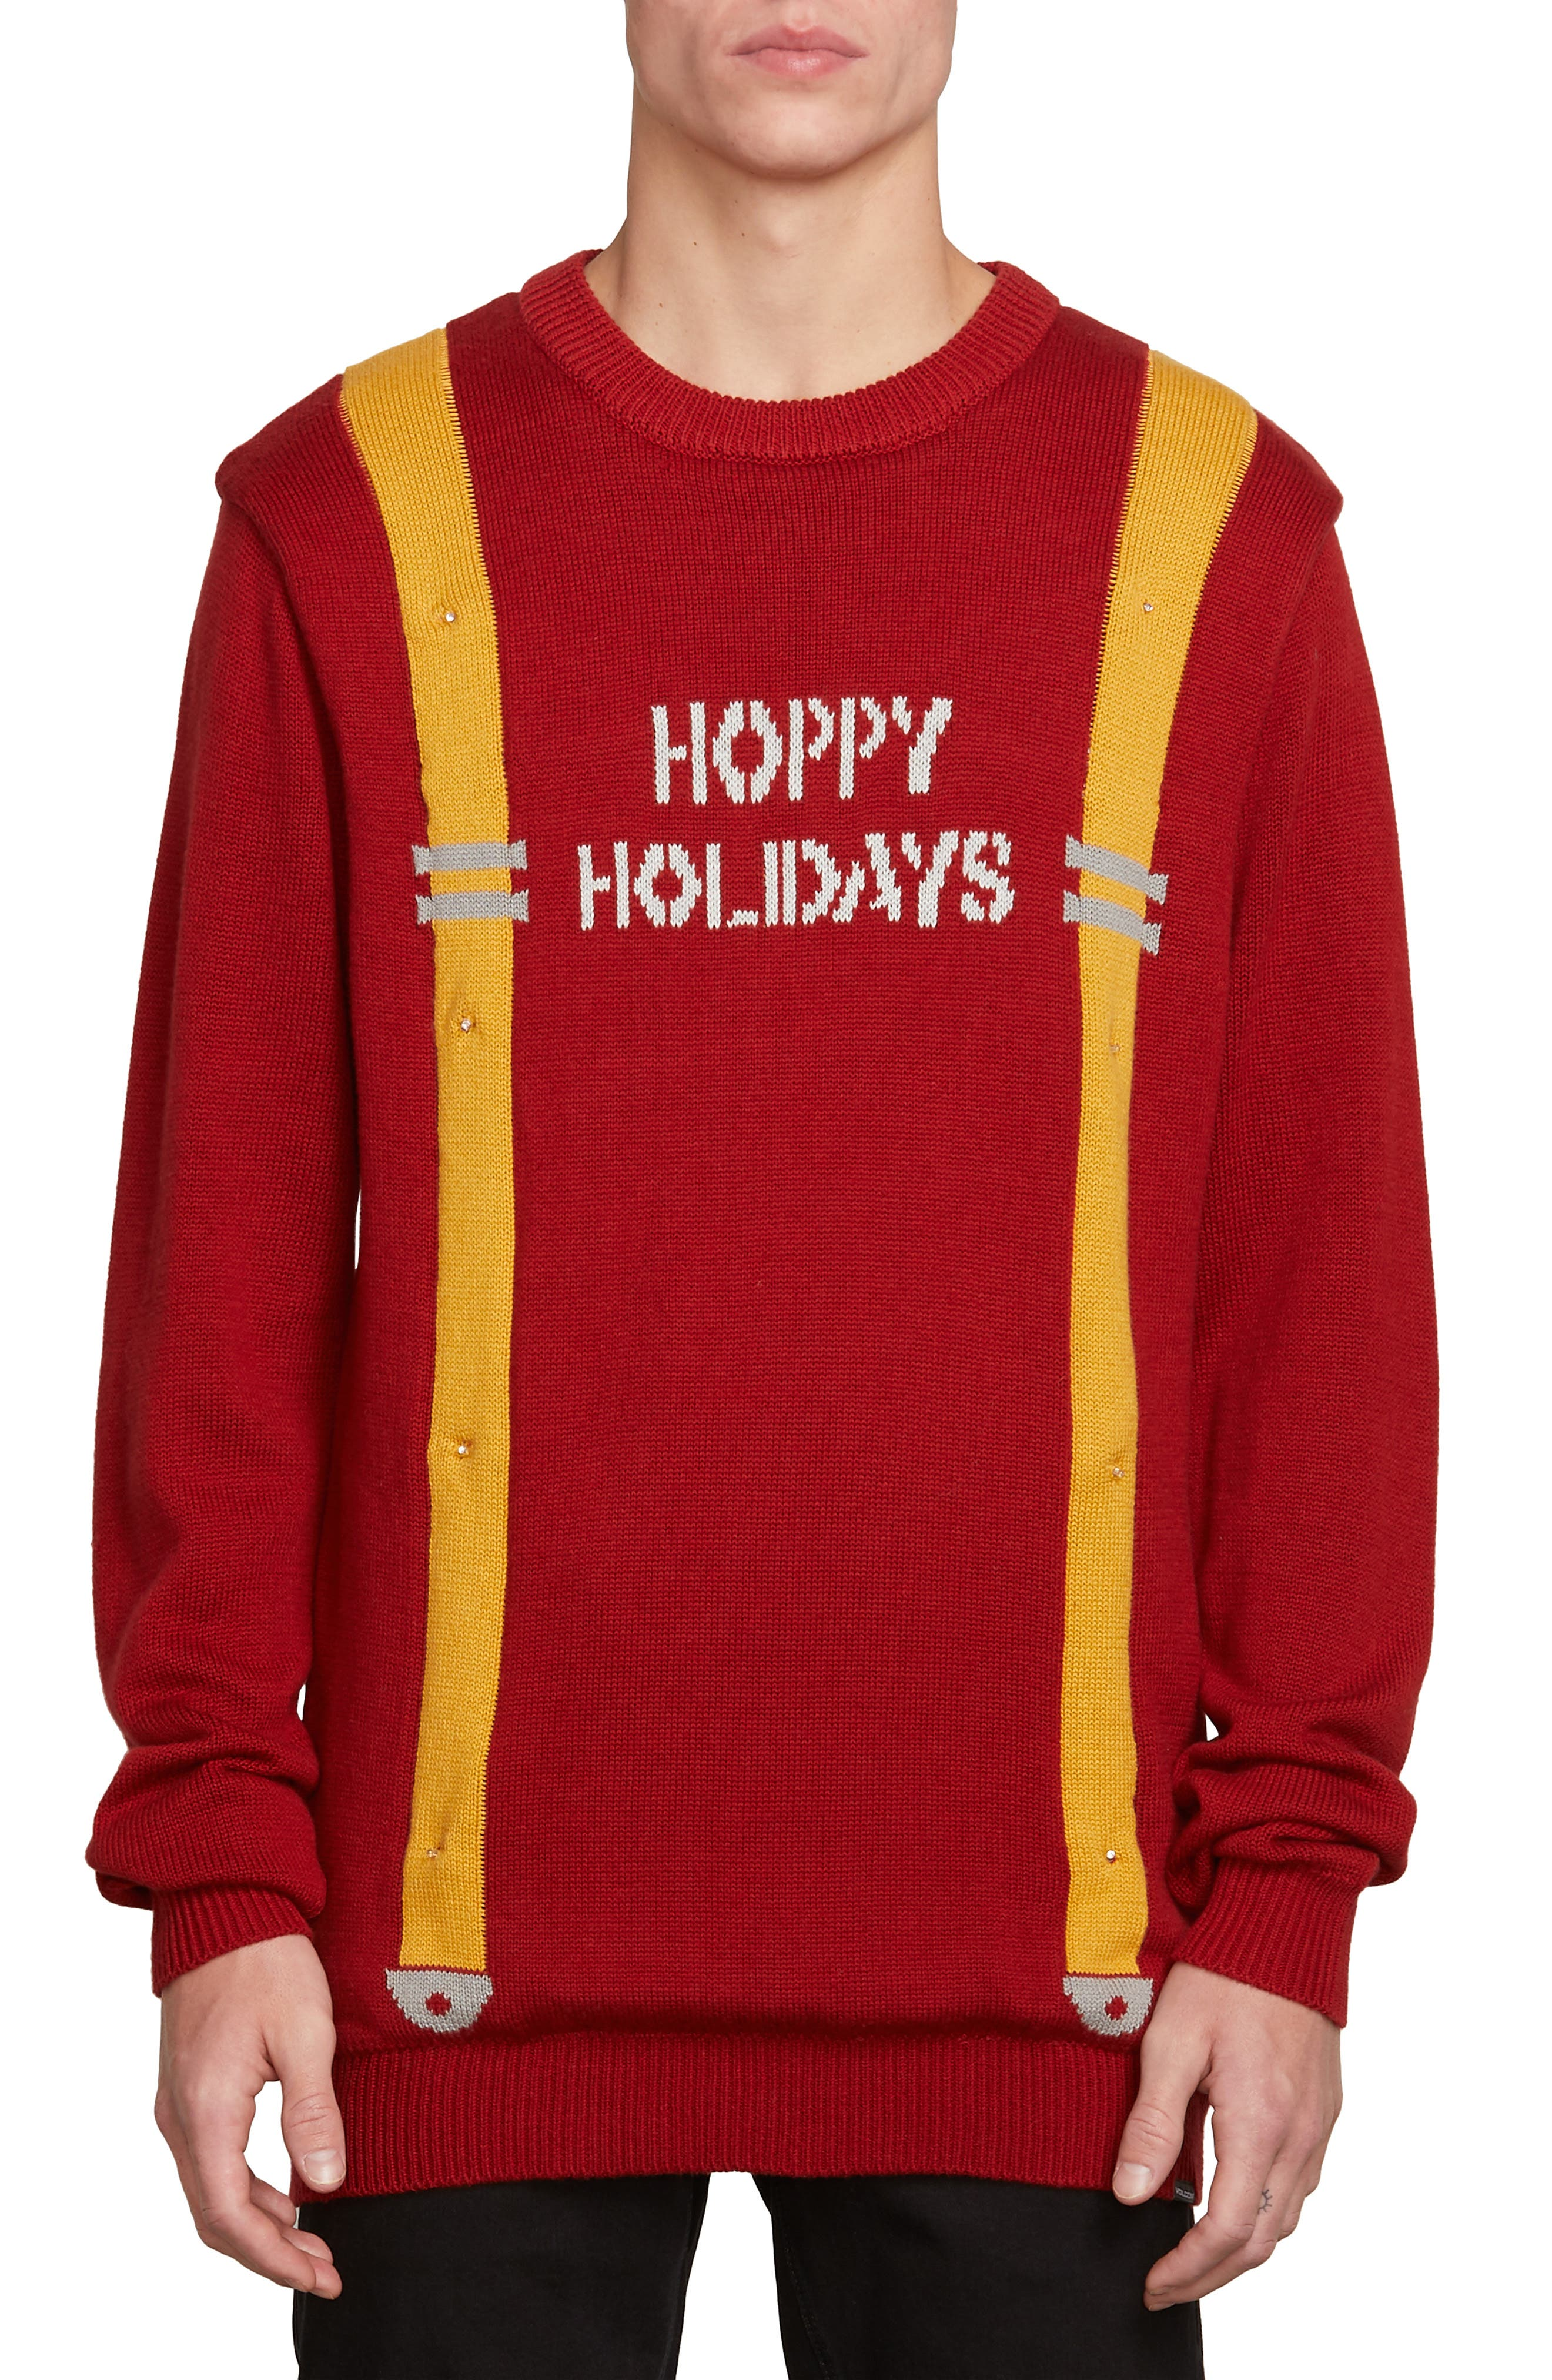 Holiday Suspenders Sweater,                             Main thumbnail 1, color,                             RED DRIP